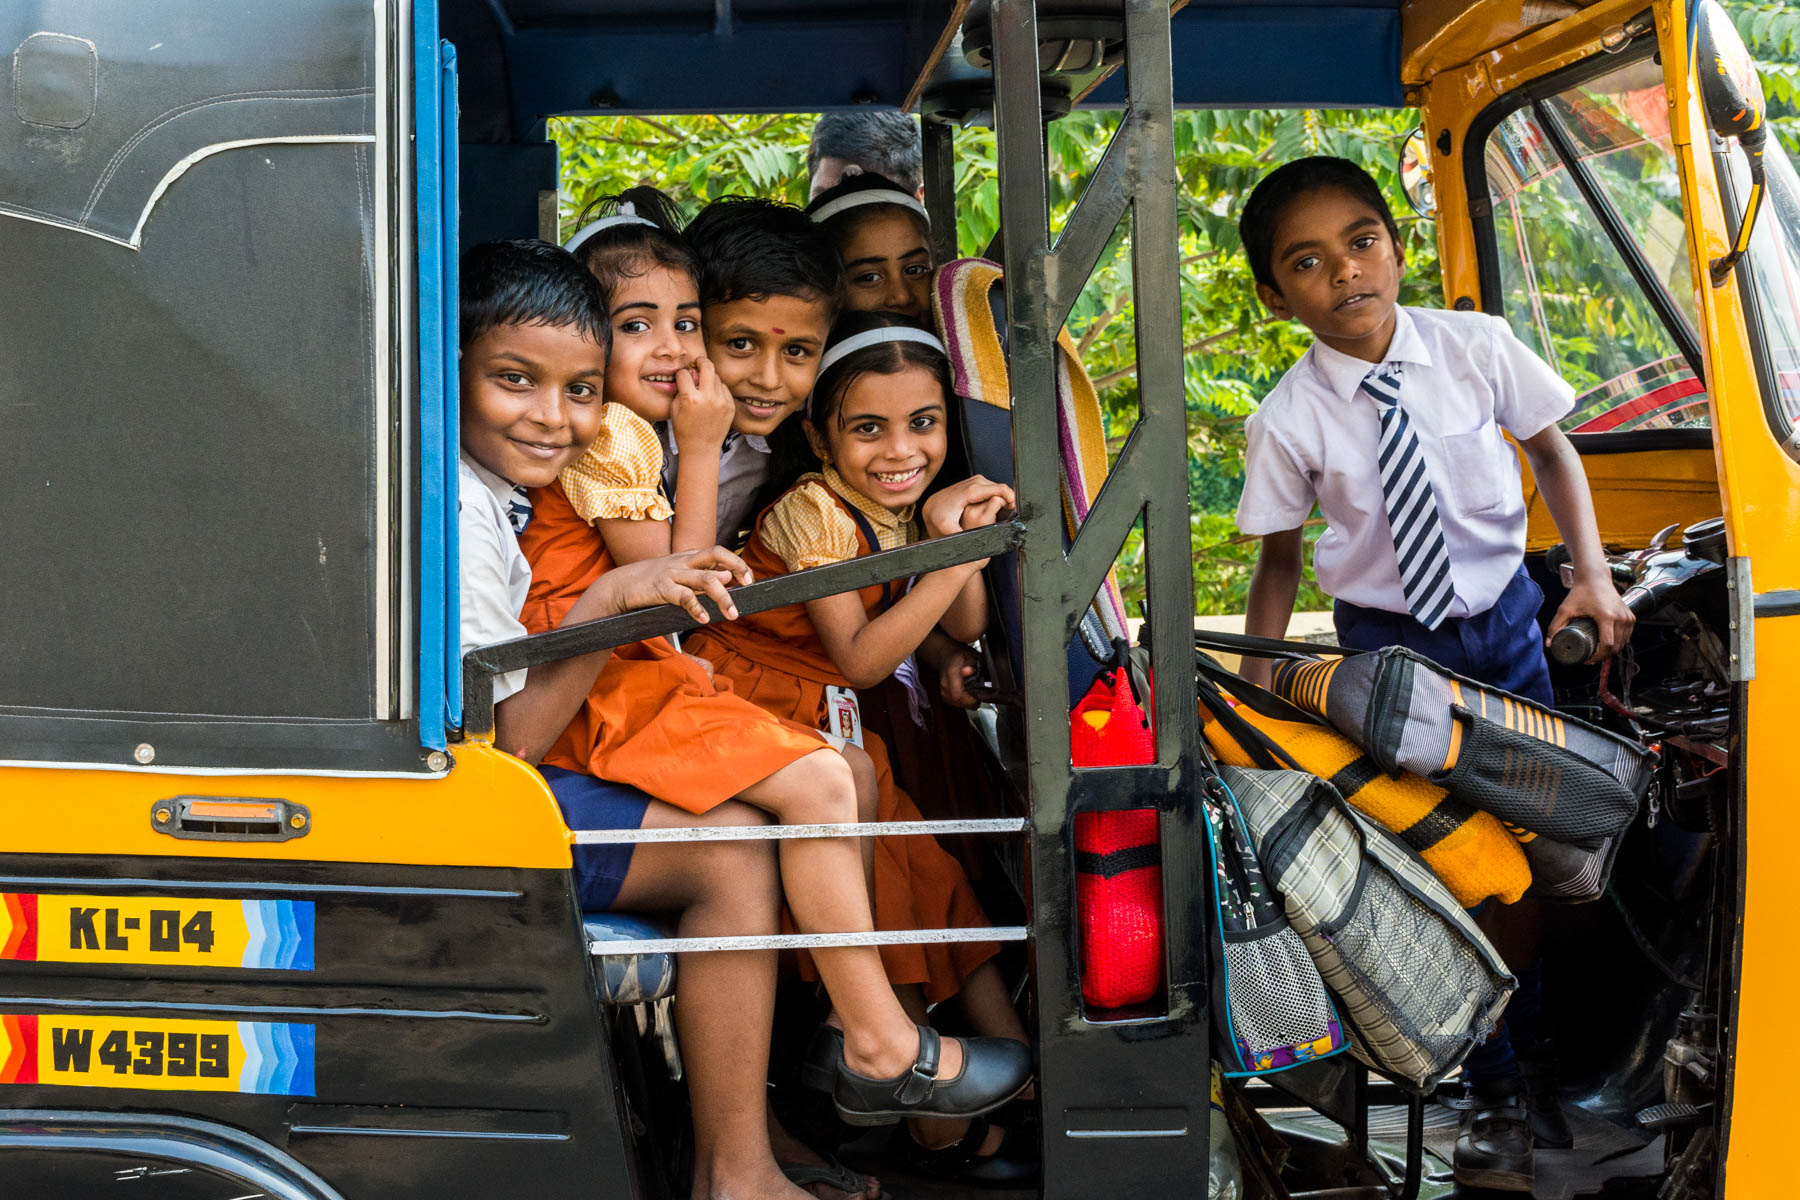 School children in an auto rickshaw in Alleppey, India - Lost With Purpose